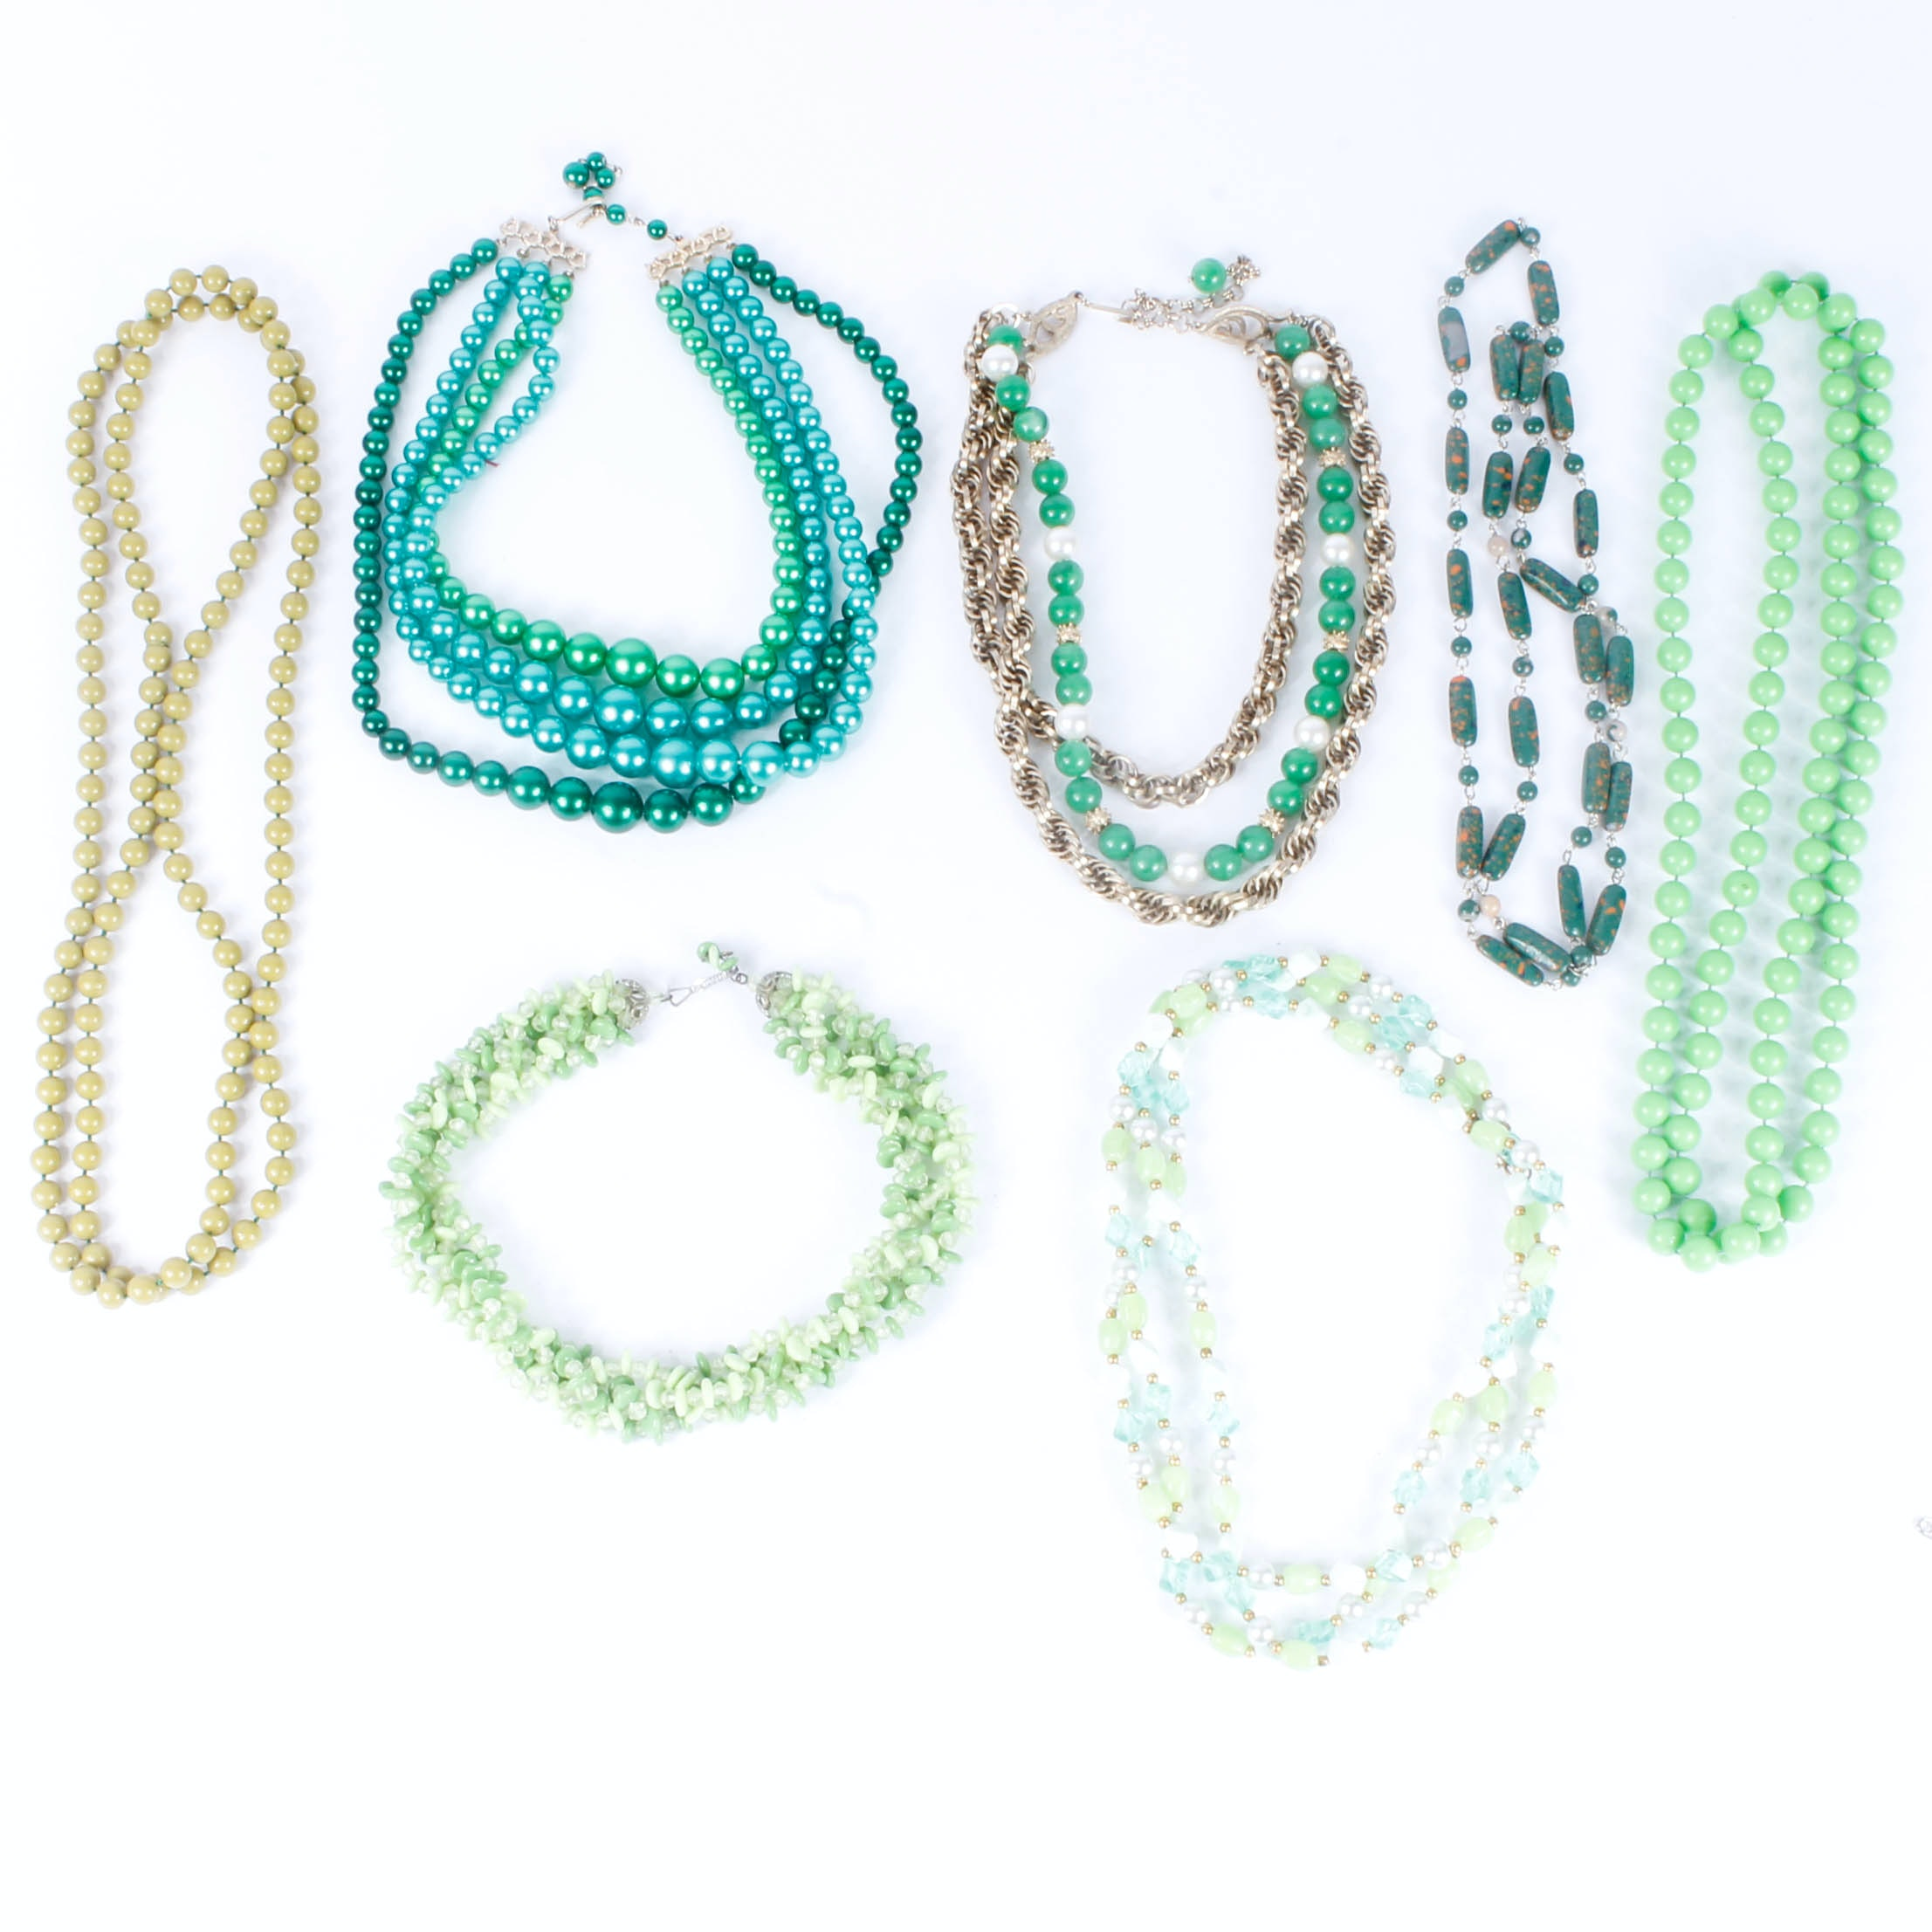 Group of Green Vintage Beaded Necklaces